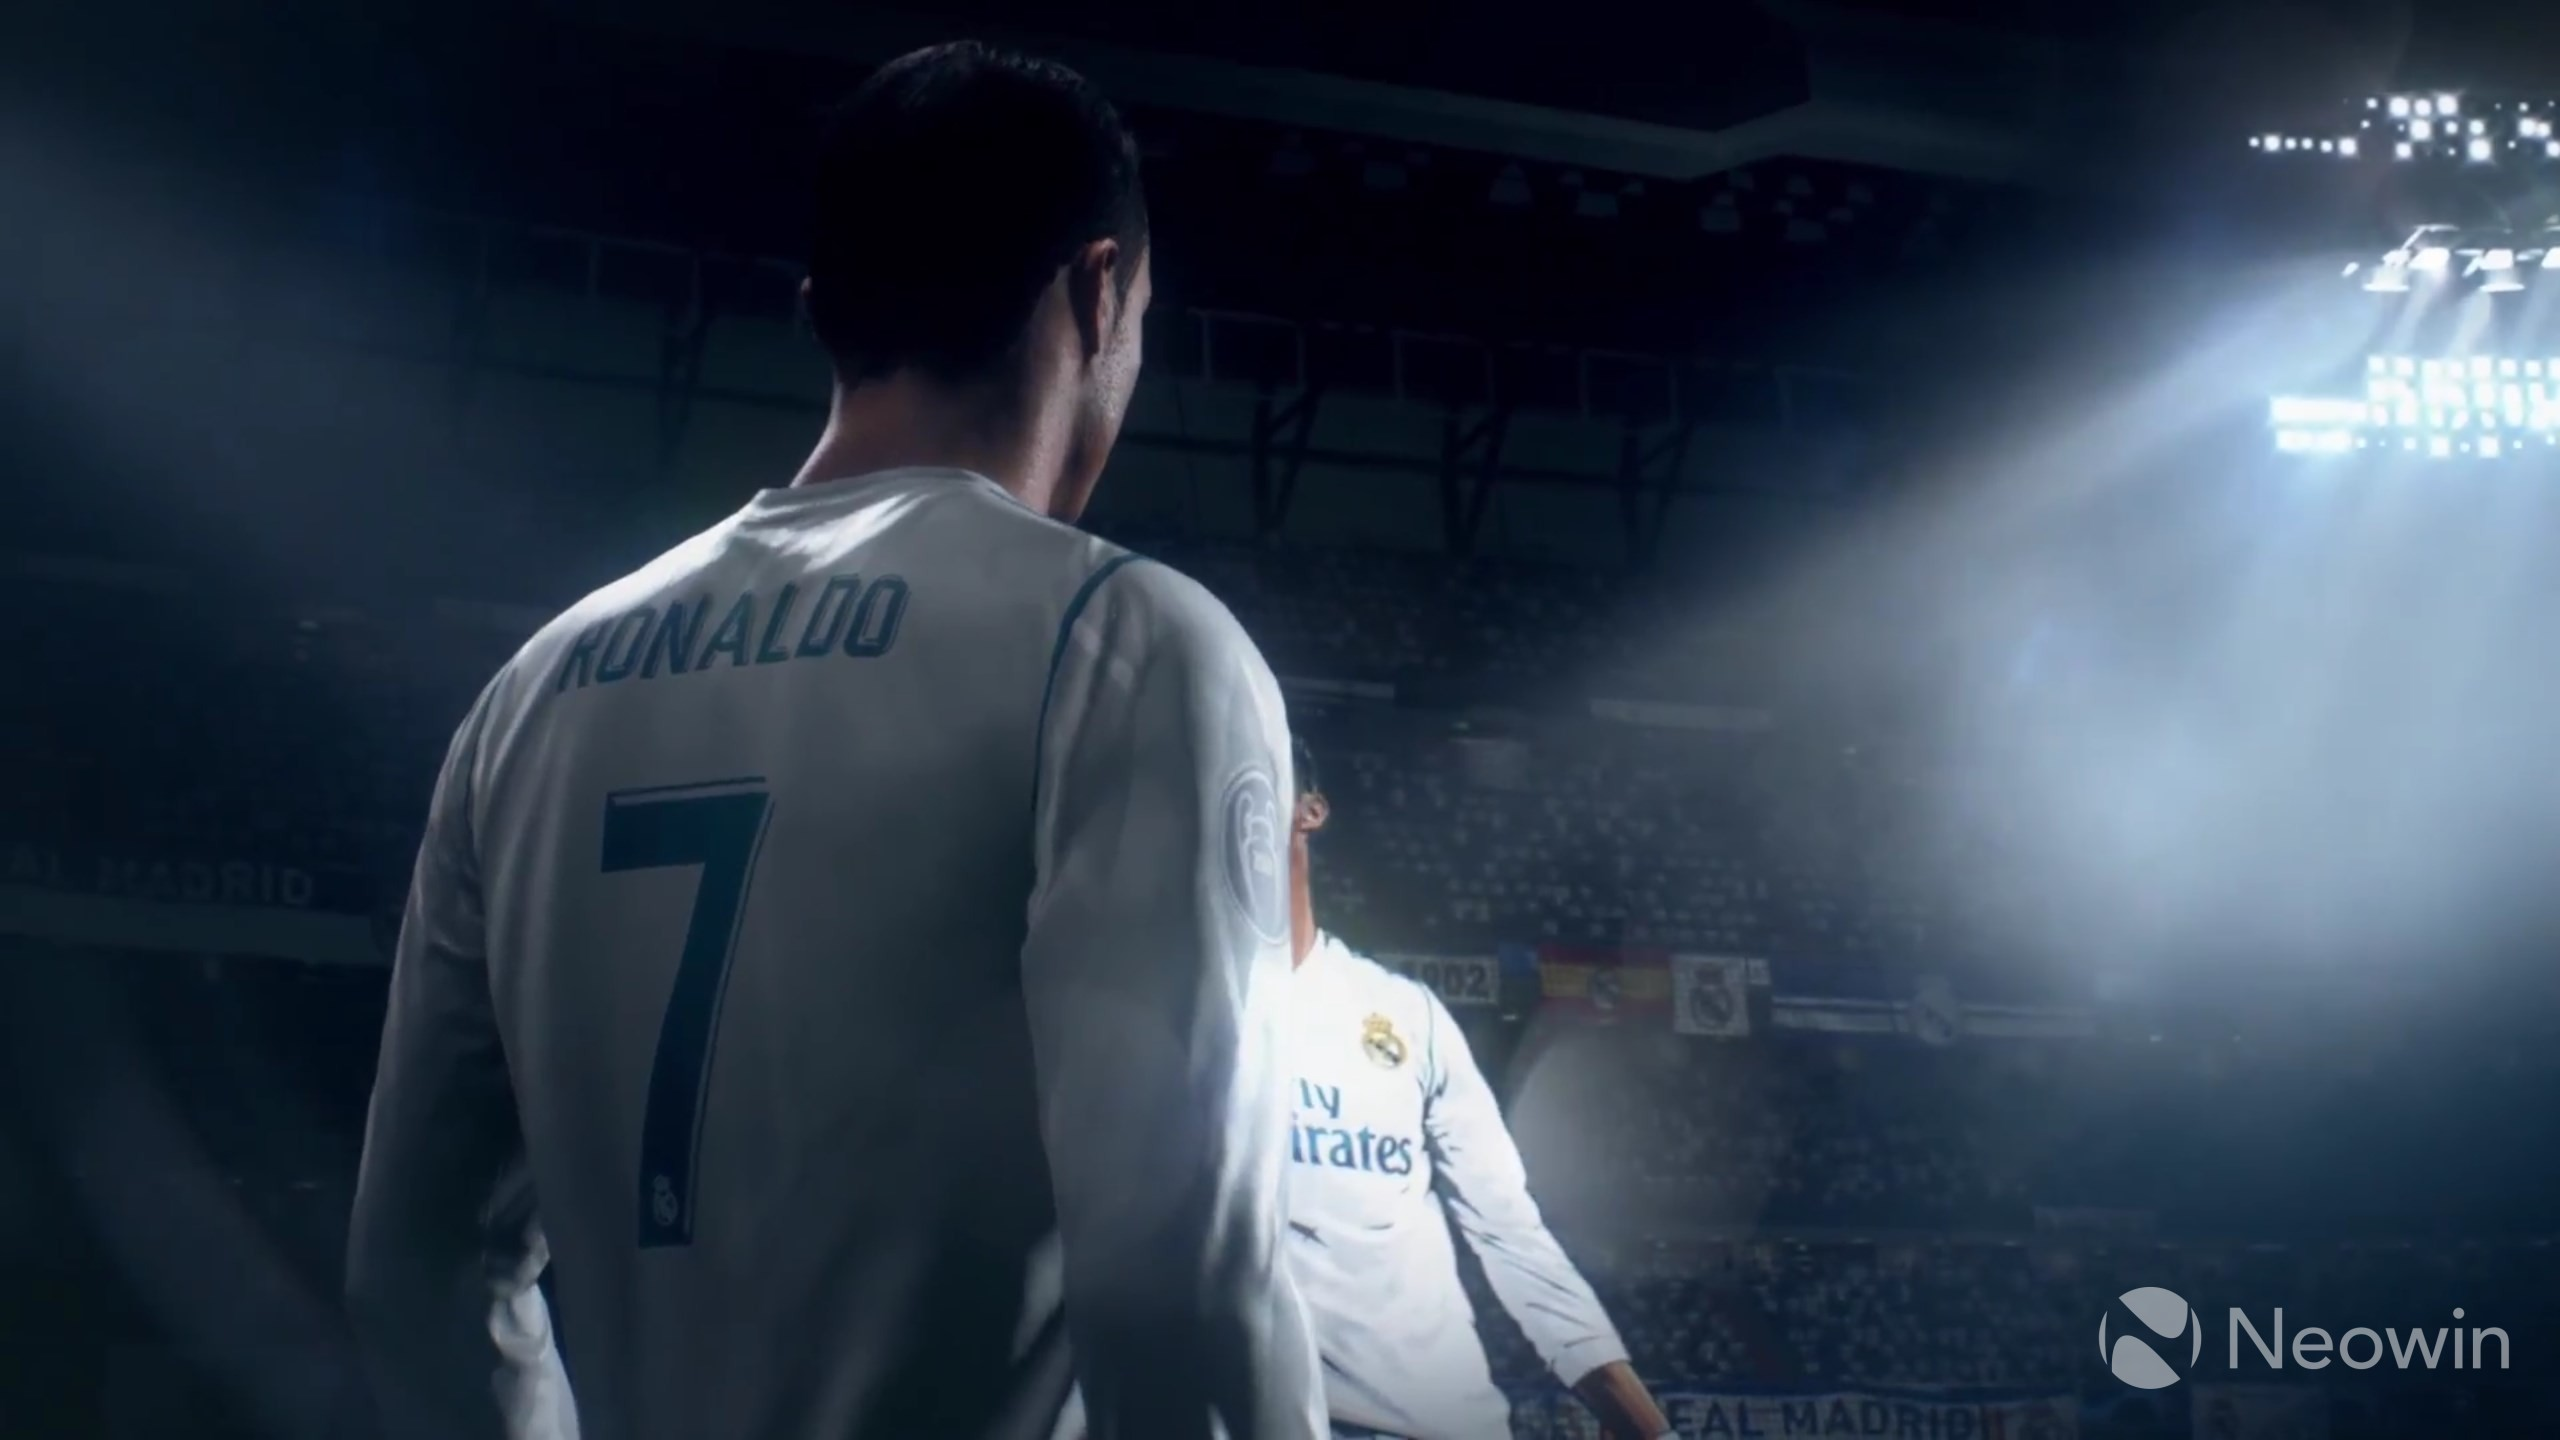 FIFA 19 demo is now available to download on Xbox One, PlayStation 4